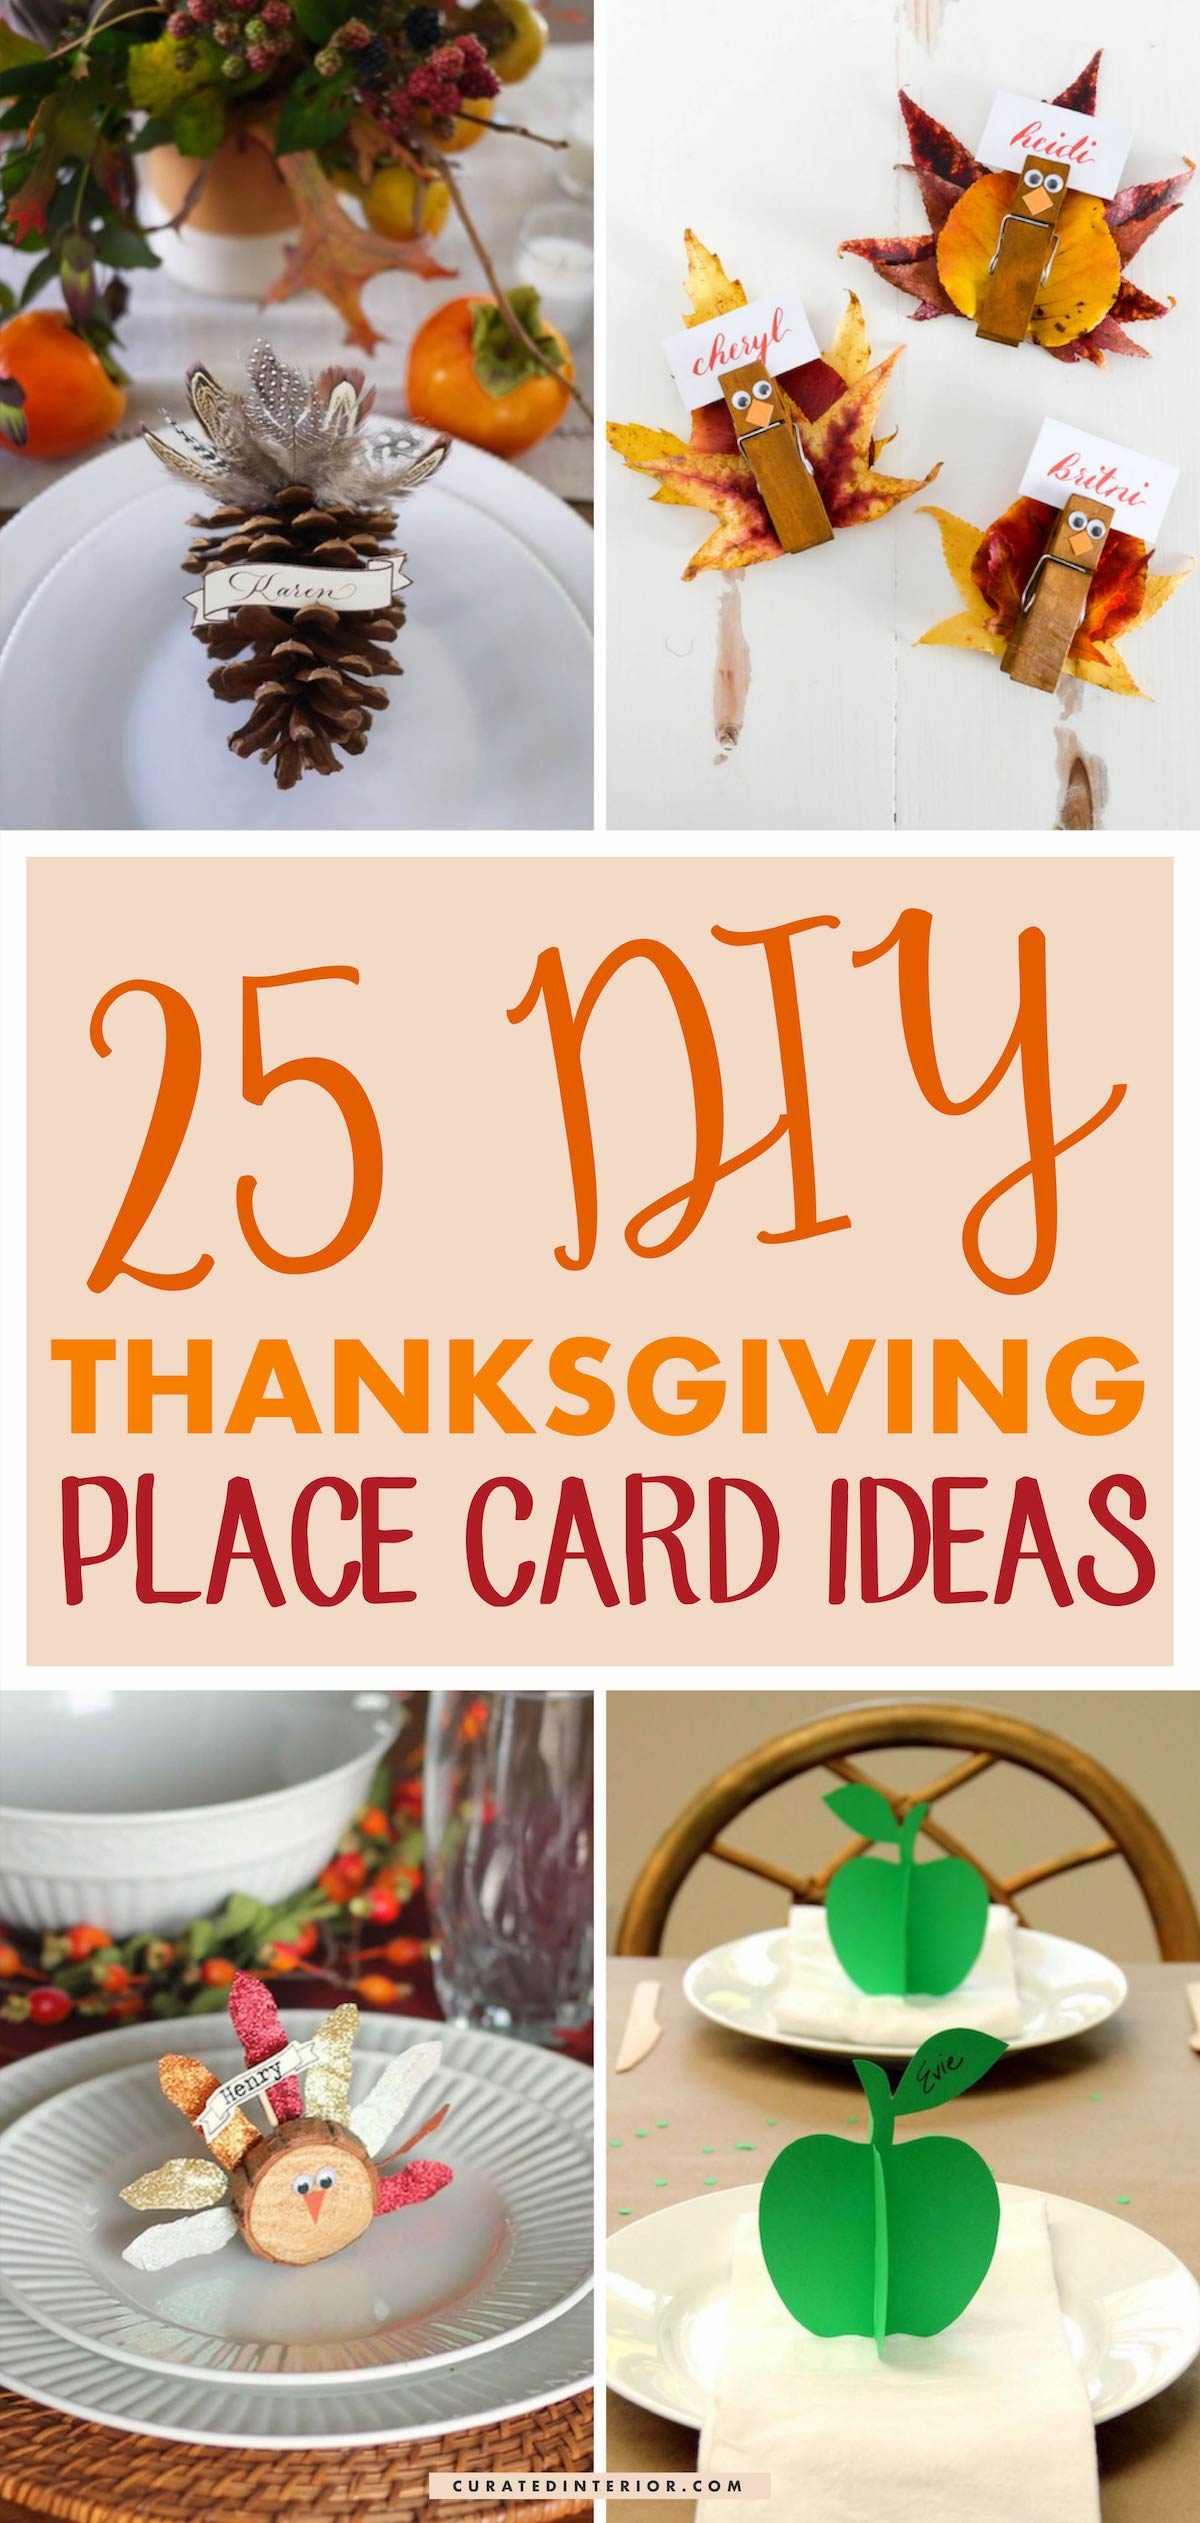 25 Awesome Diy Thanksgiving Place Card Ideas